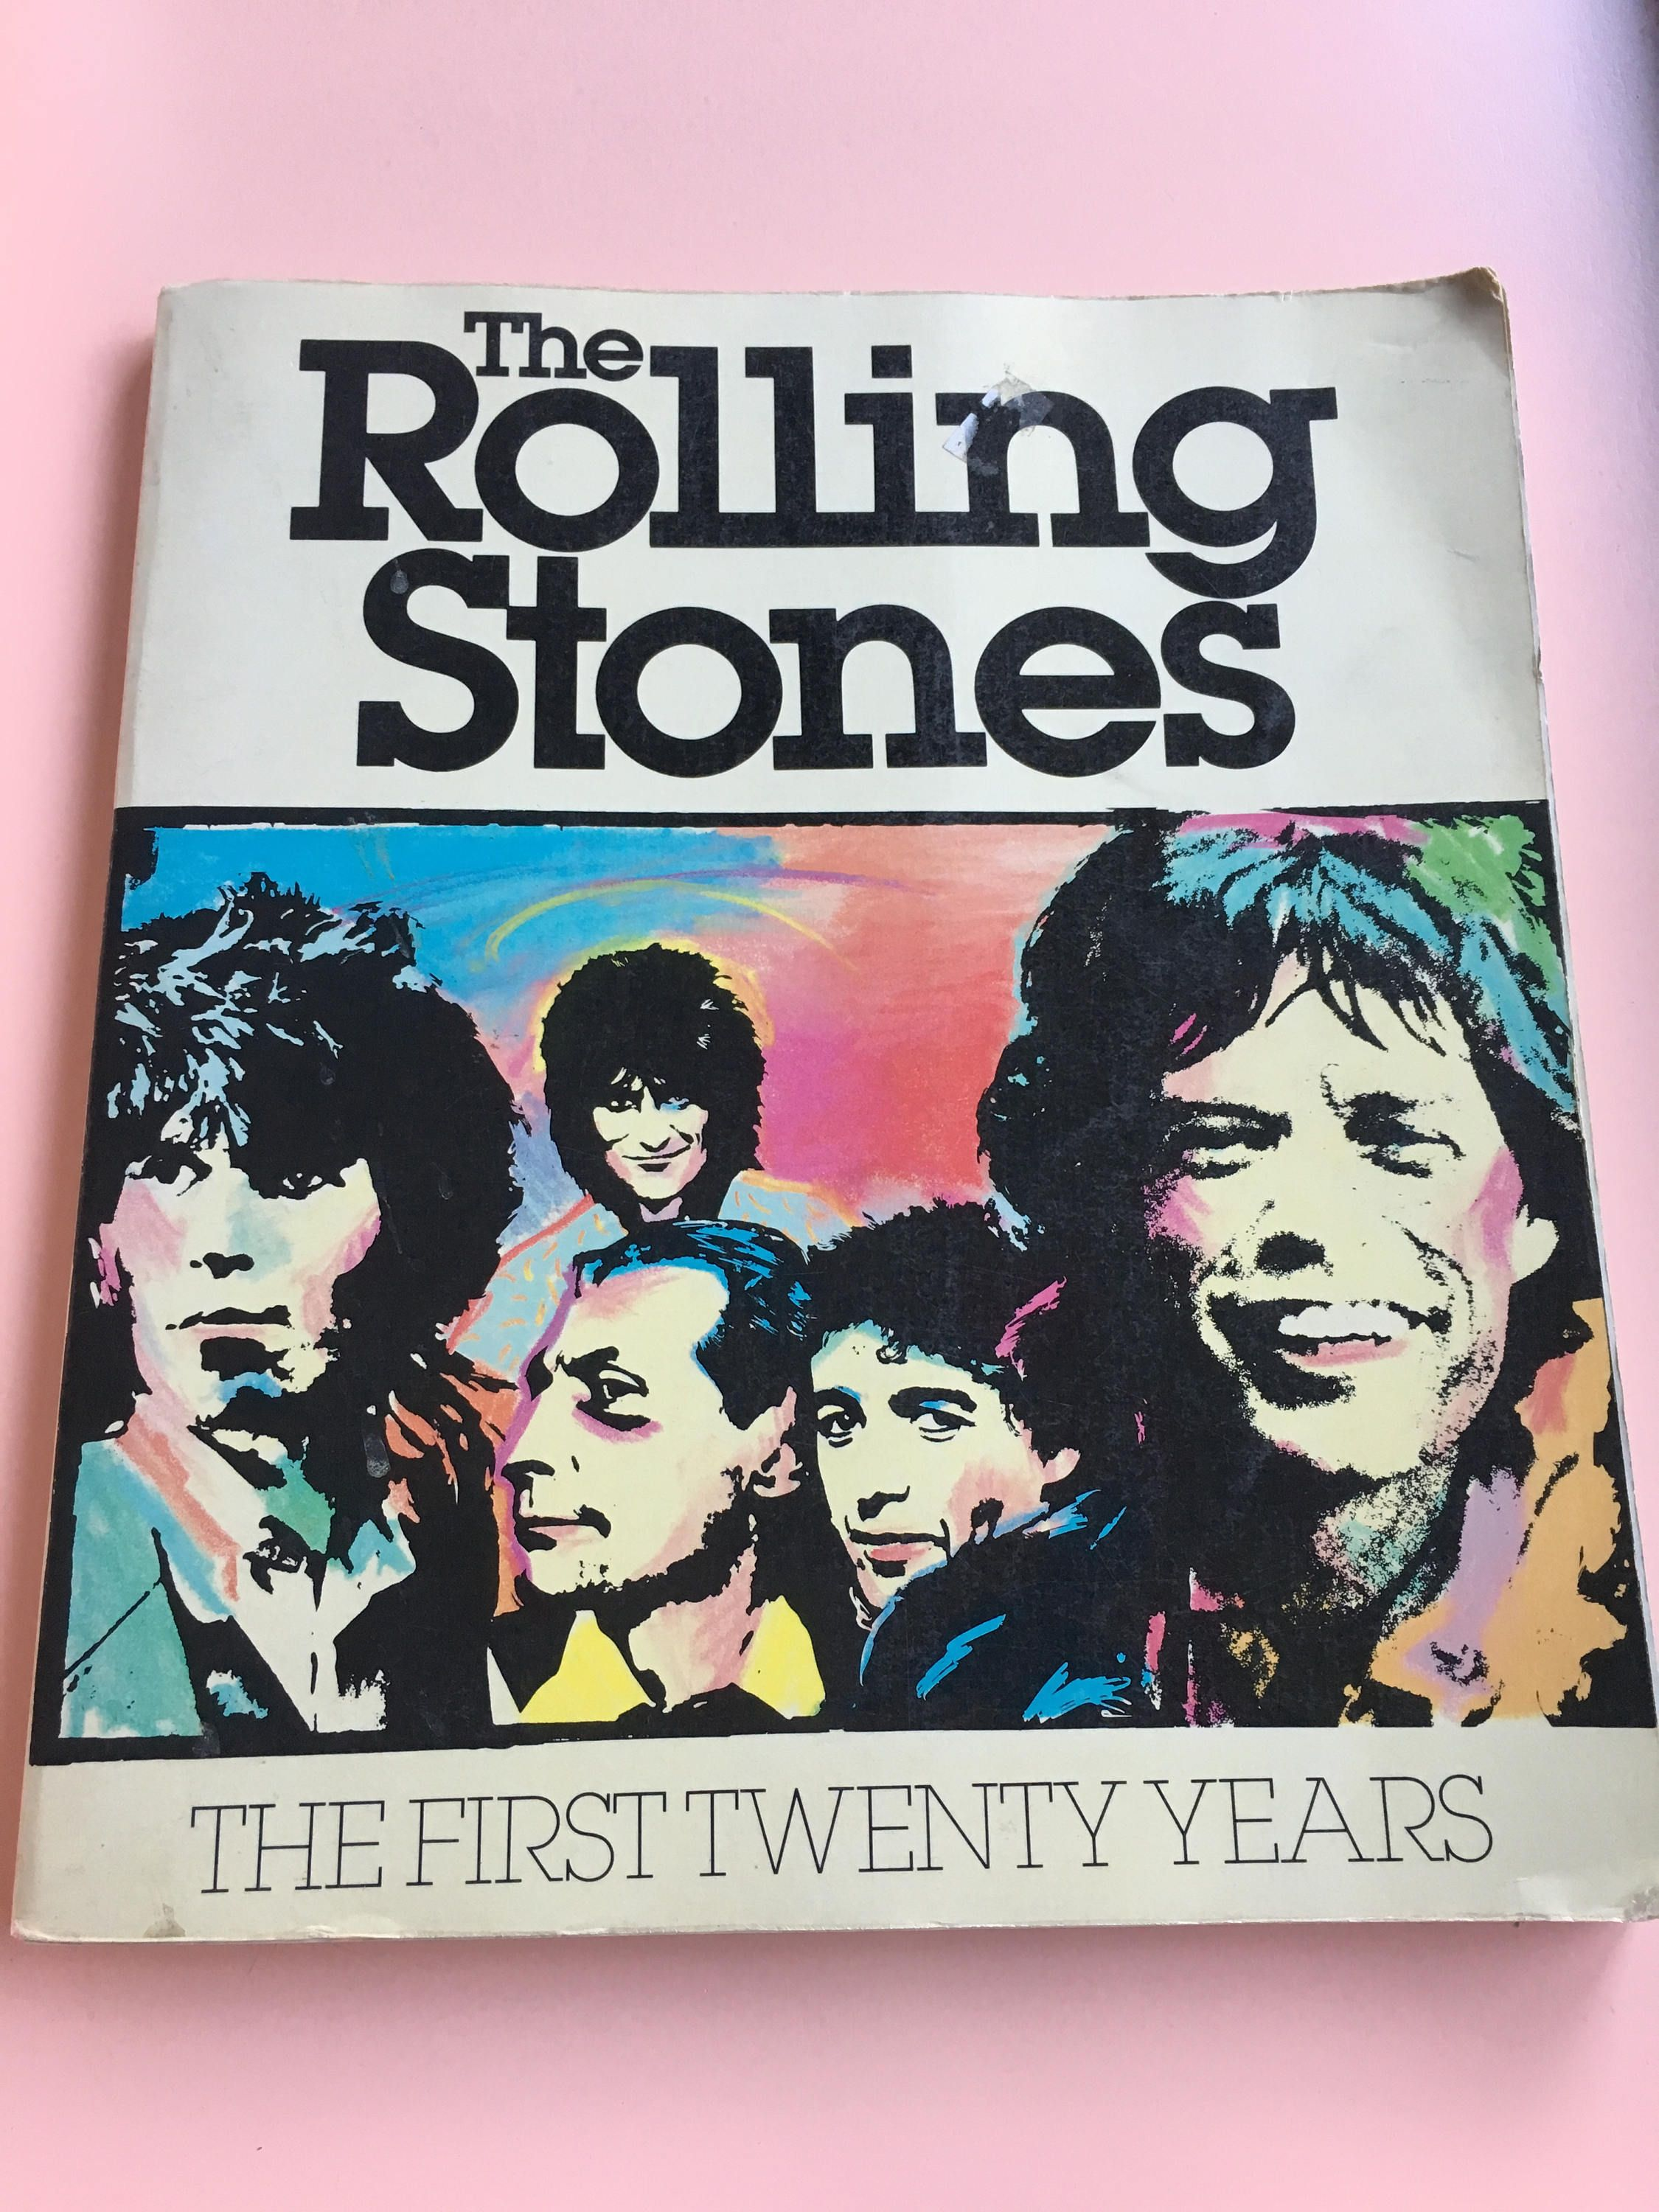 1981 The Rolling Stones The First Twenty Years by David Dalton